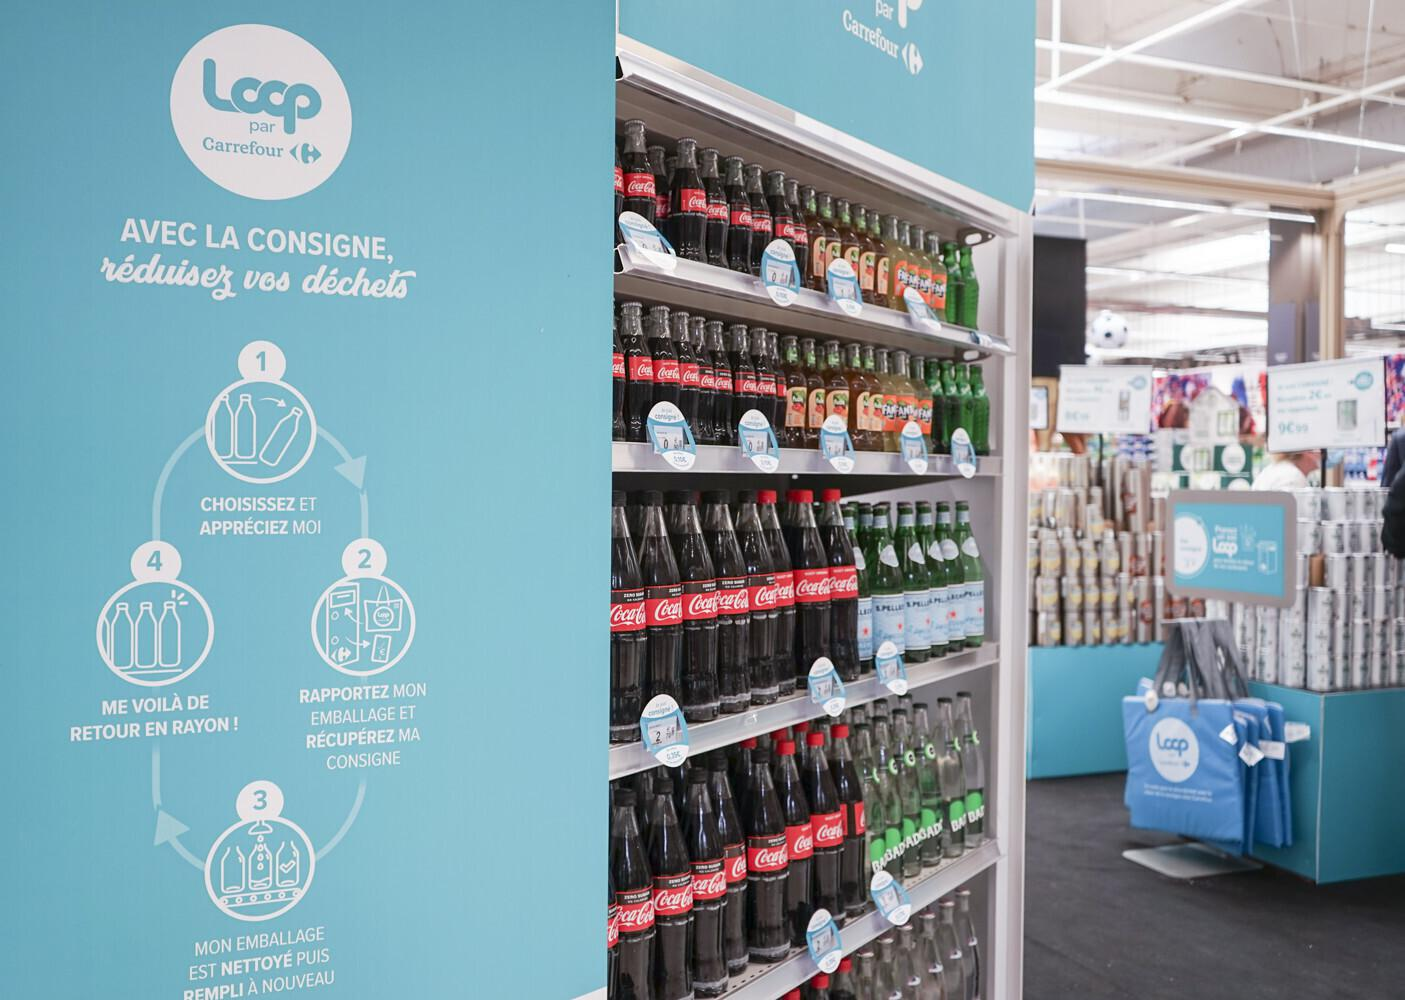 Loop hopes to go mainstream with reusable packaging